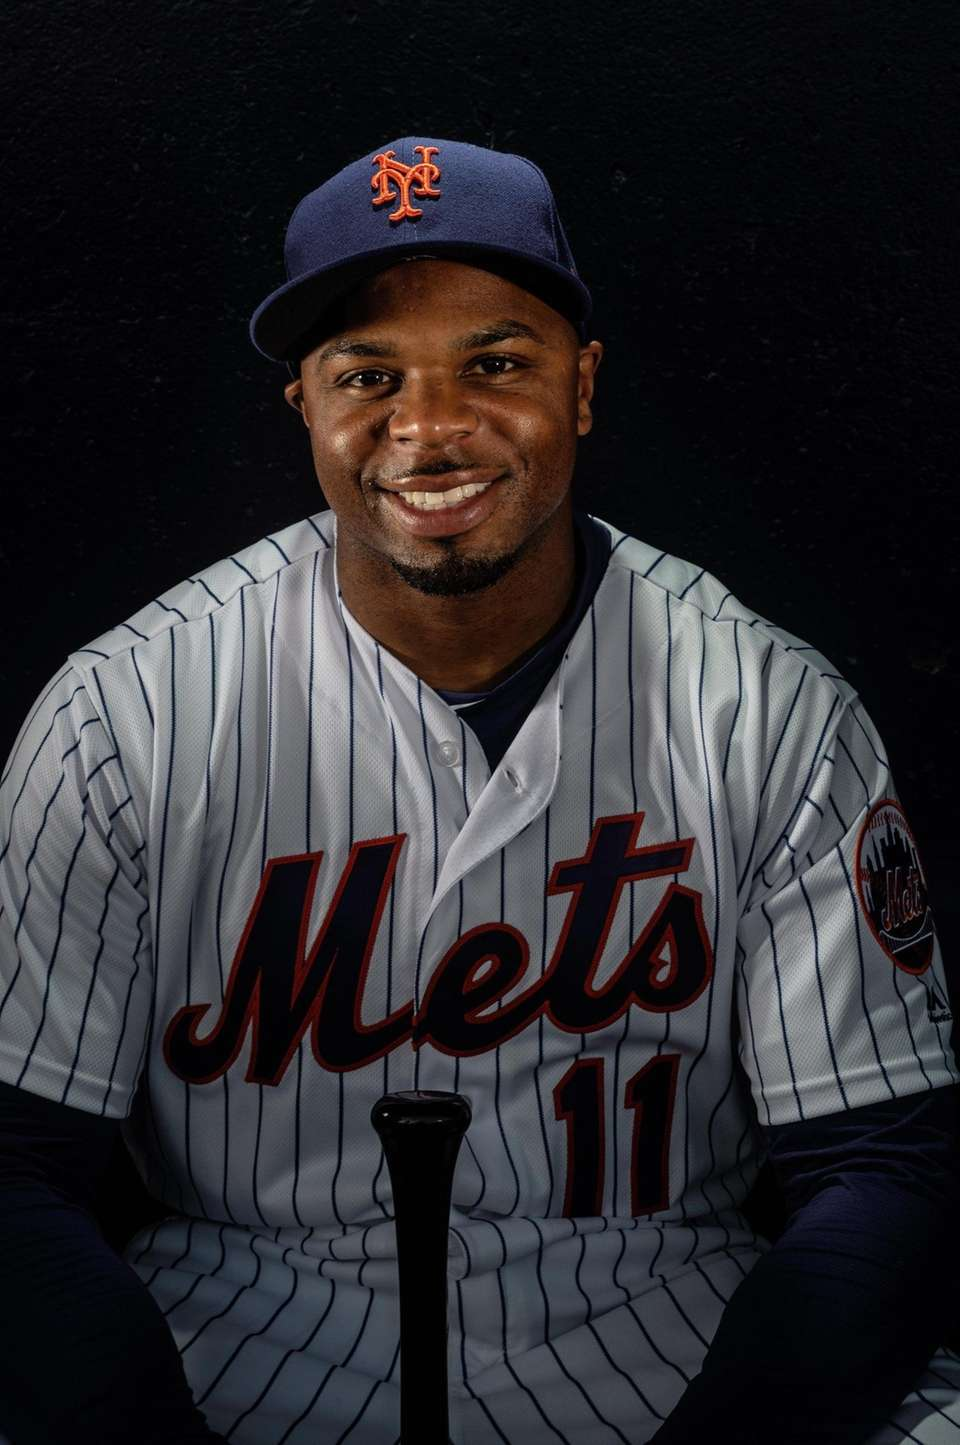 New York Mets outfielder Rajai Davis during spring